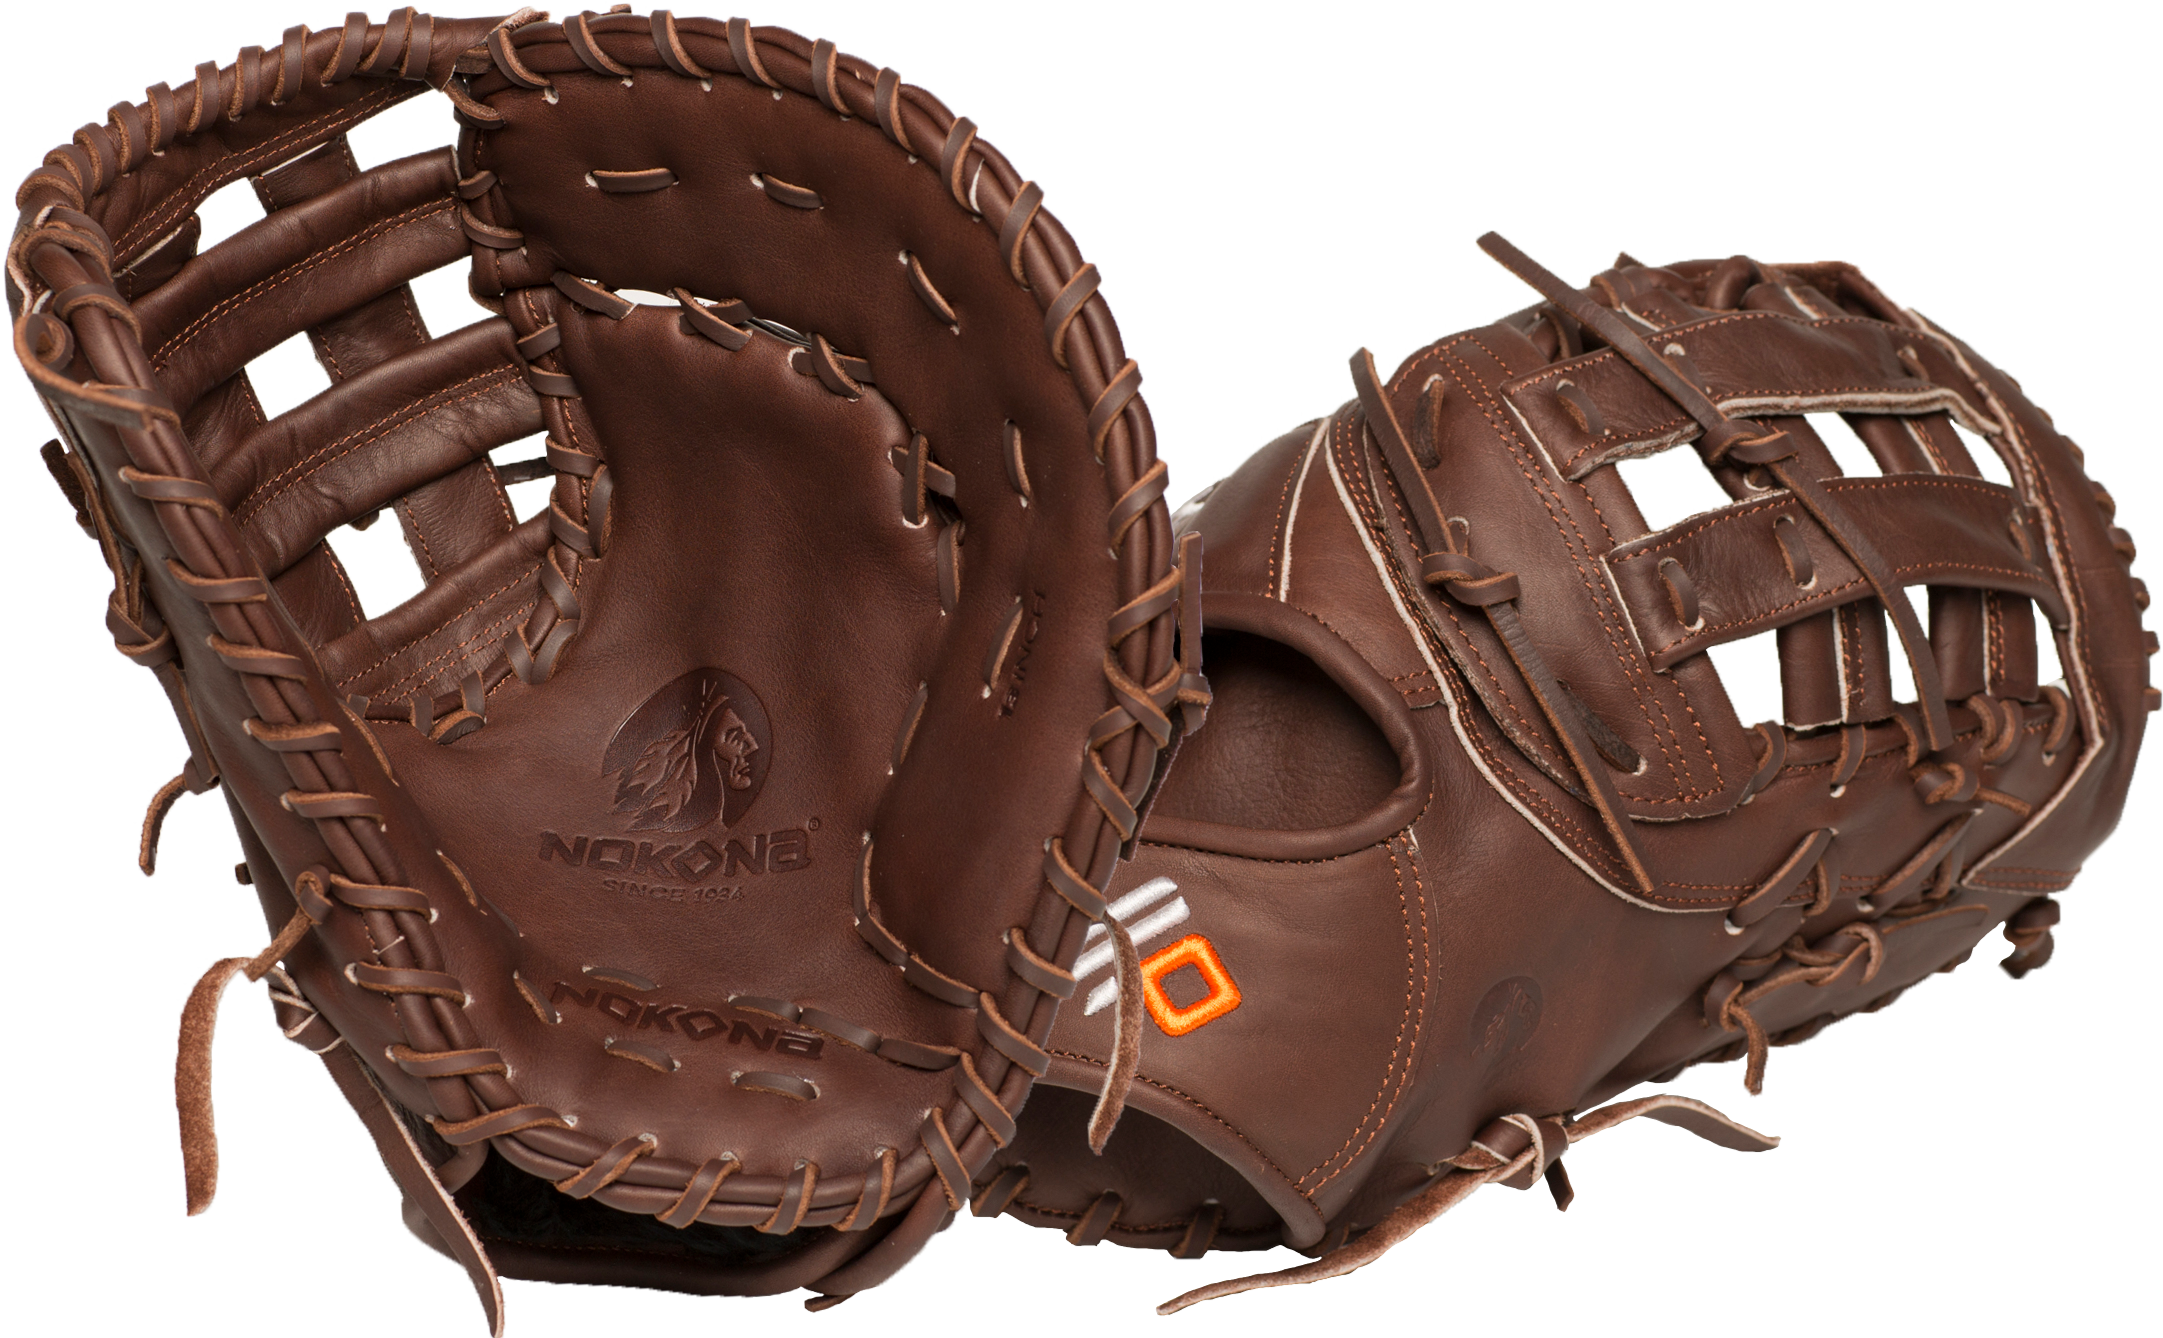 Glove clipart catcher mitt. Nokona x elite series